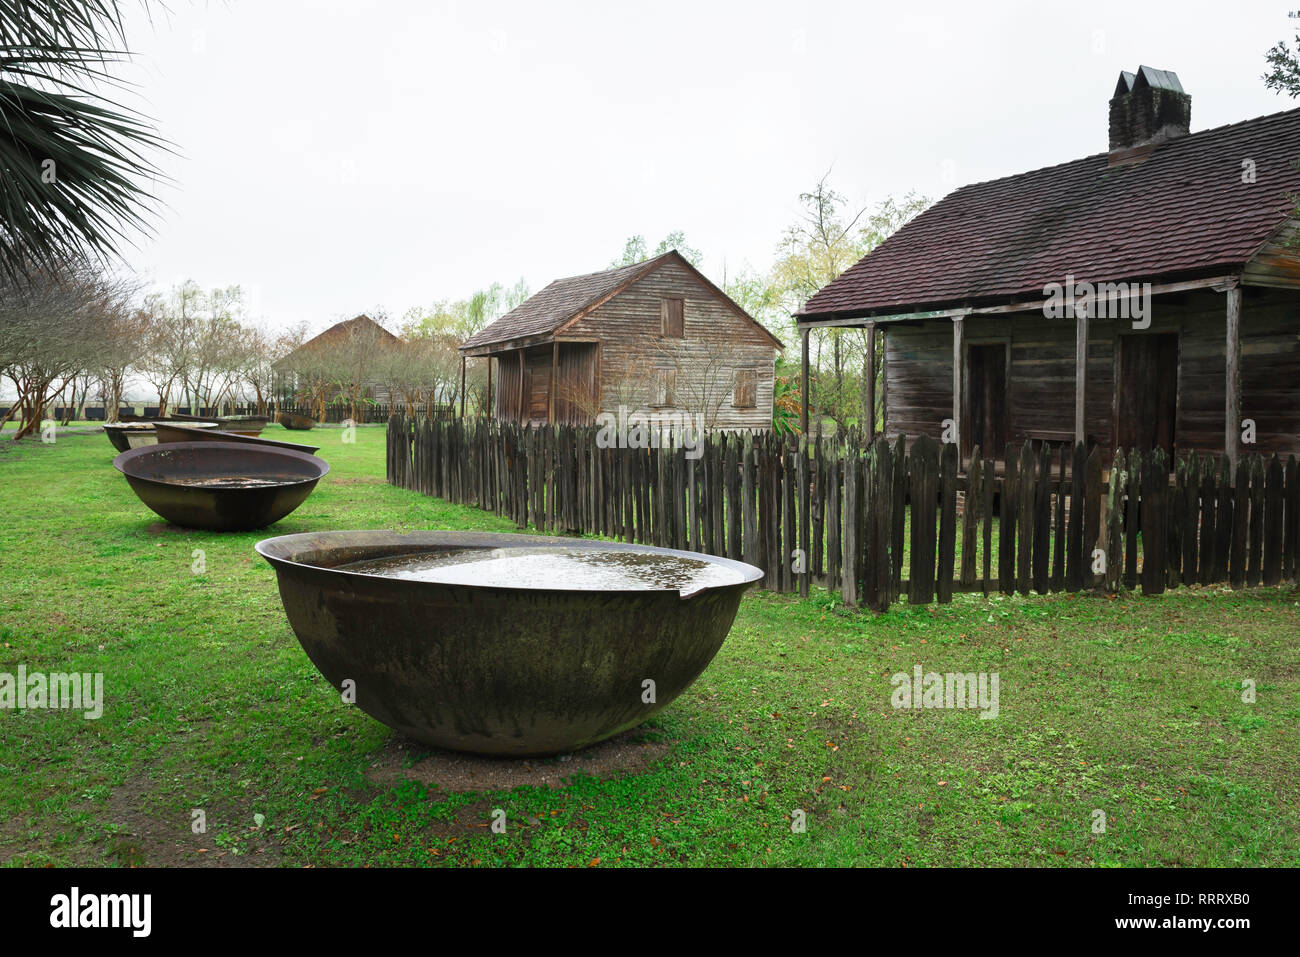 View of slave cabins with large iron bowls used for boiling down and refining sugar cane sited in the Whitney Plantation Museum in Louisiana, USA - Stock Image